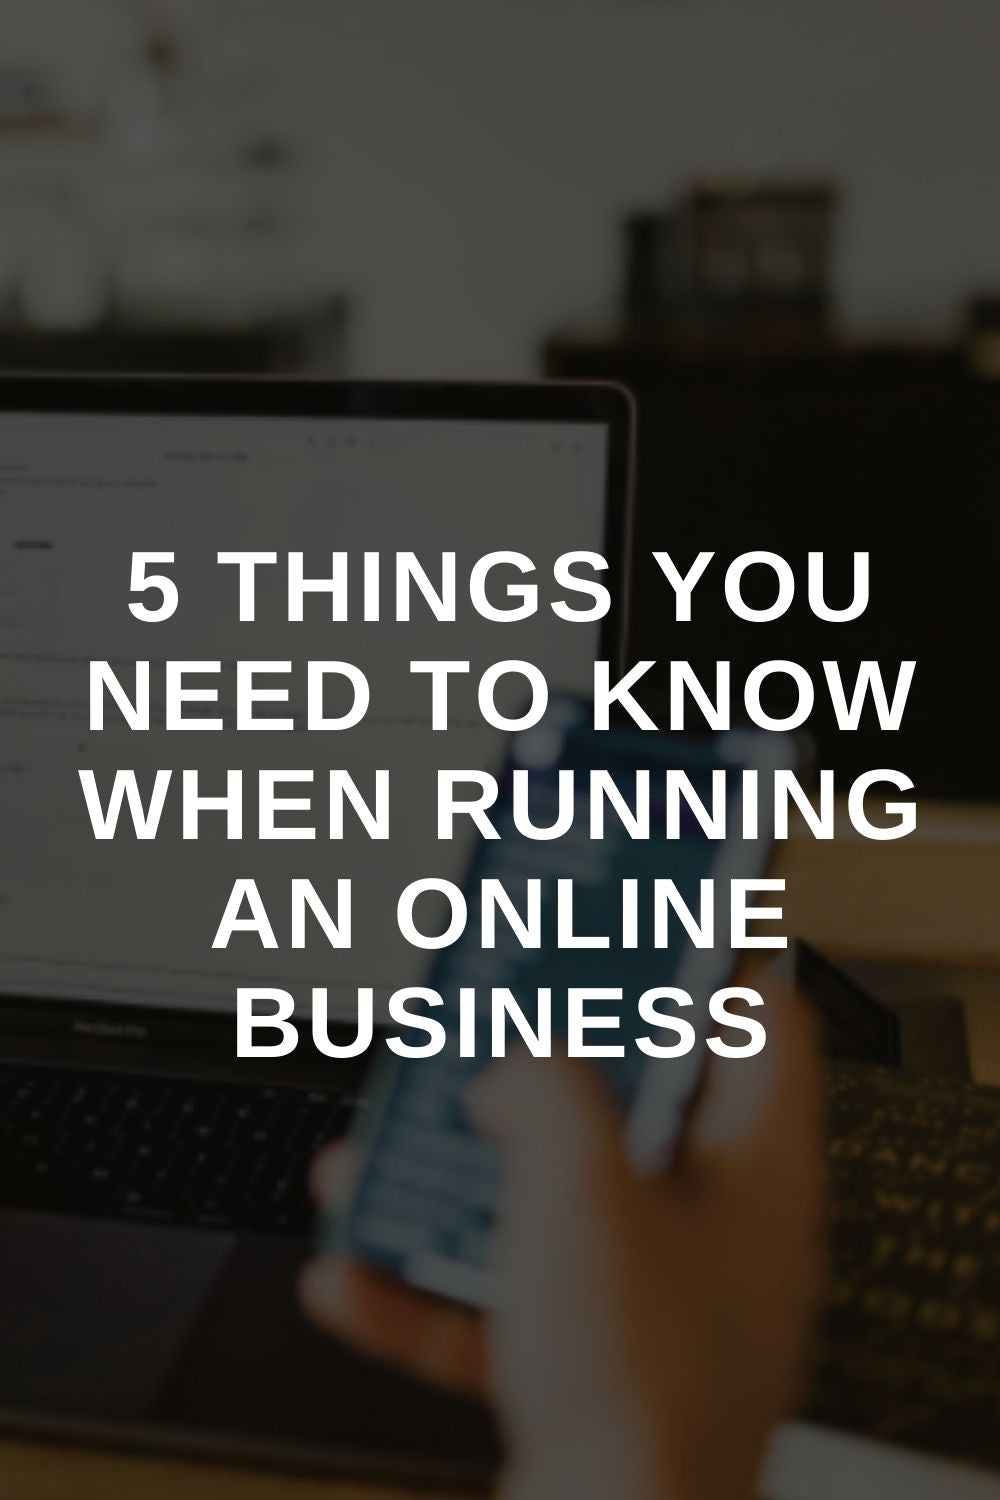 5 Things You Need To Know When Running An Online Business